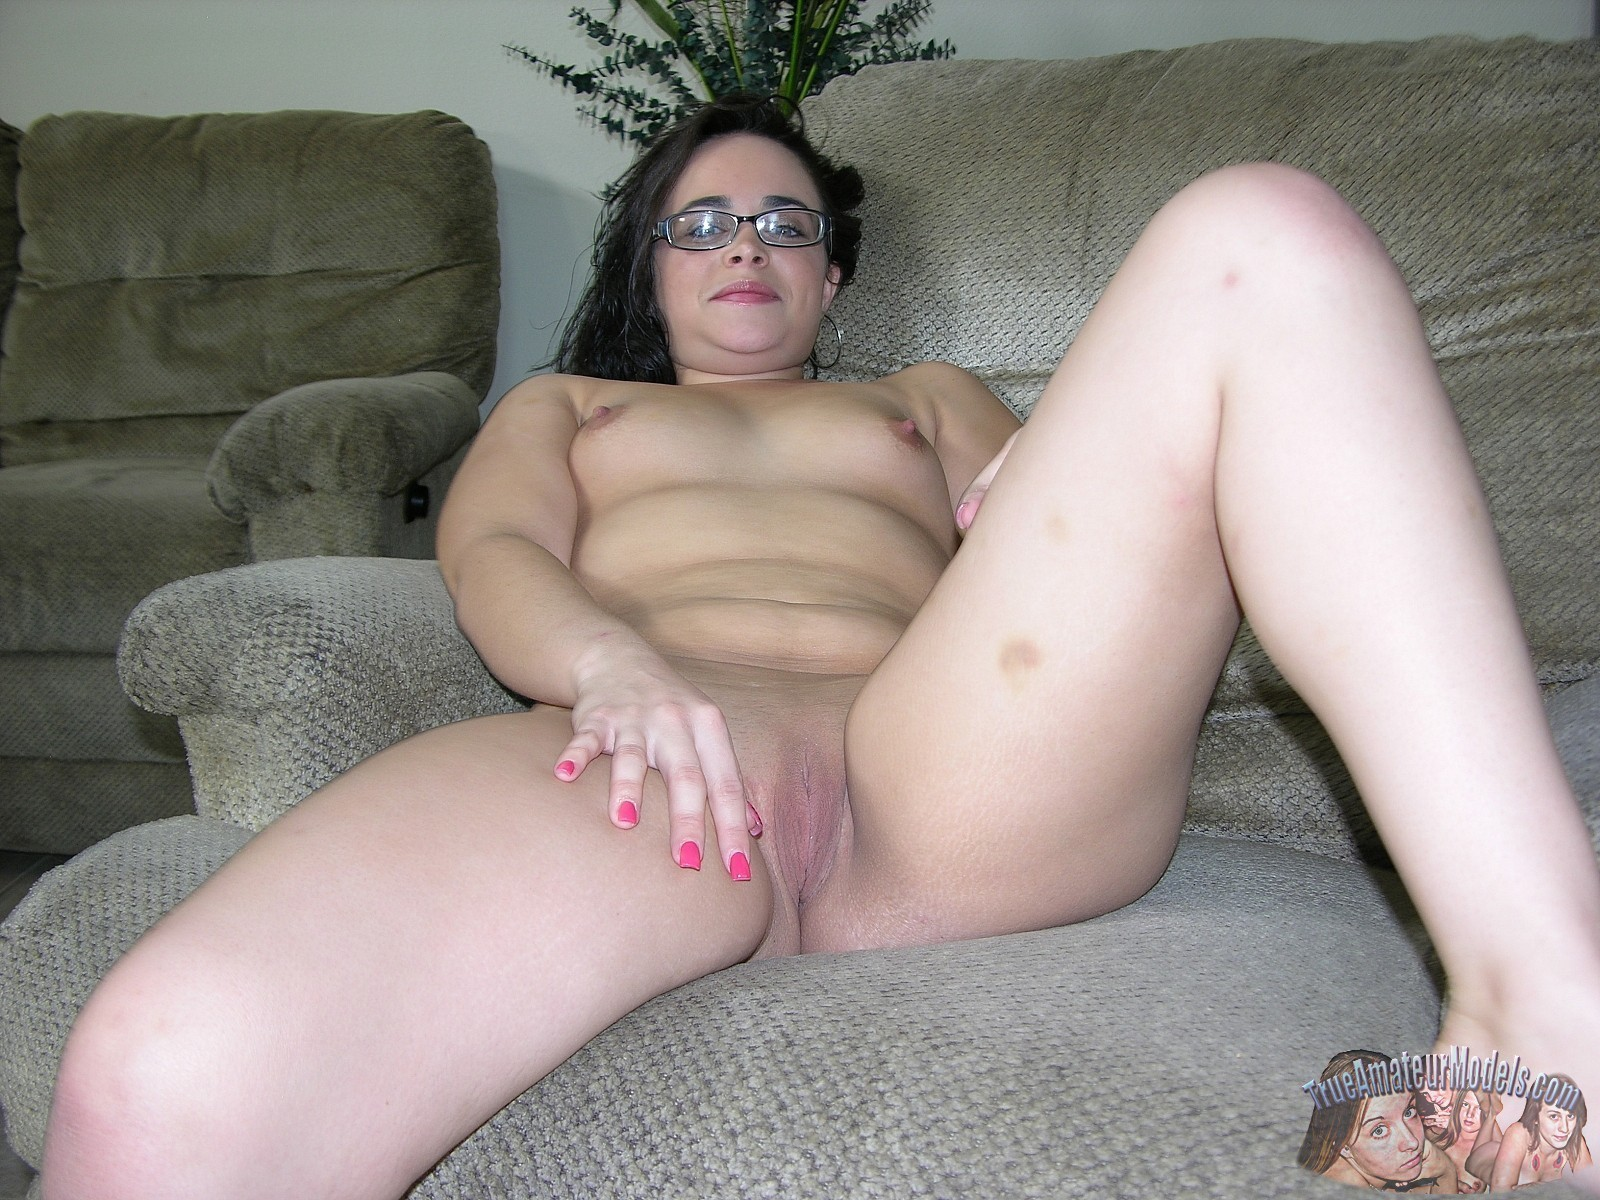 ugly-girl-gets-nude